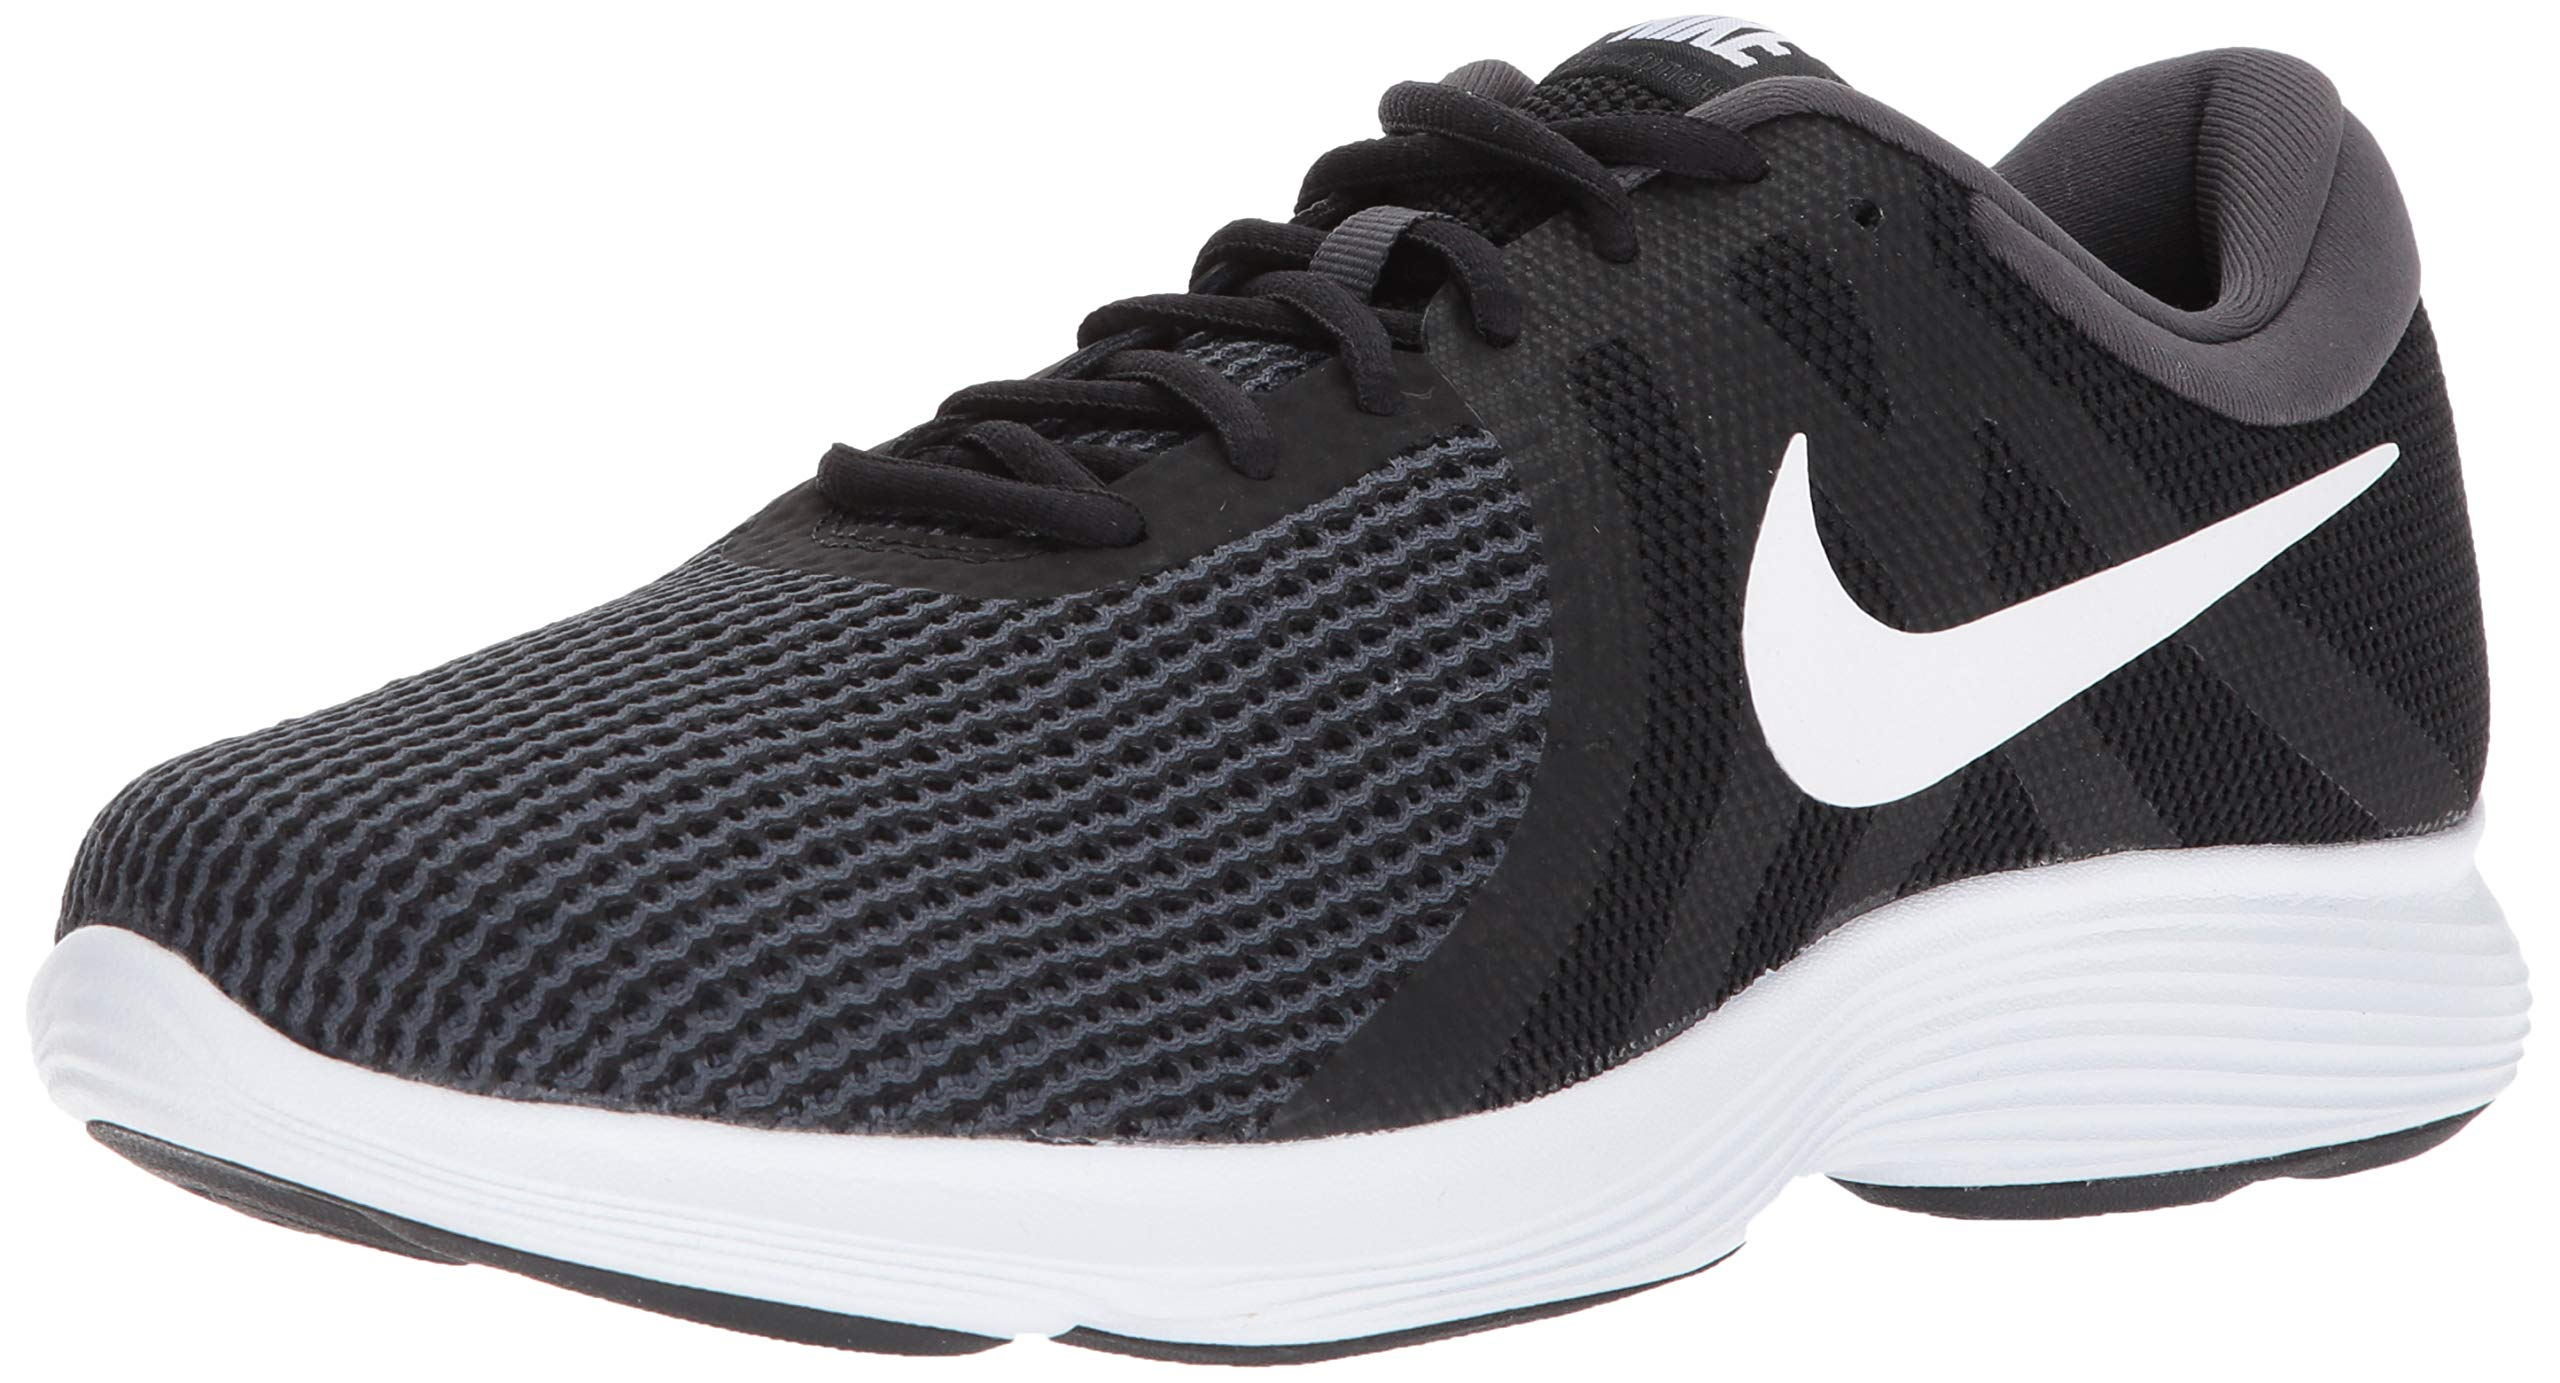 Nike Men's Revolution 4 Running Shoe Black/White - Anthracite 6.5 Wide US by Nike (Image #1)